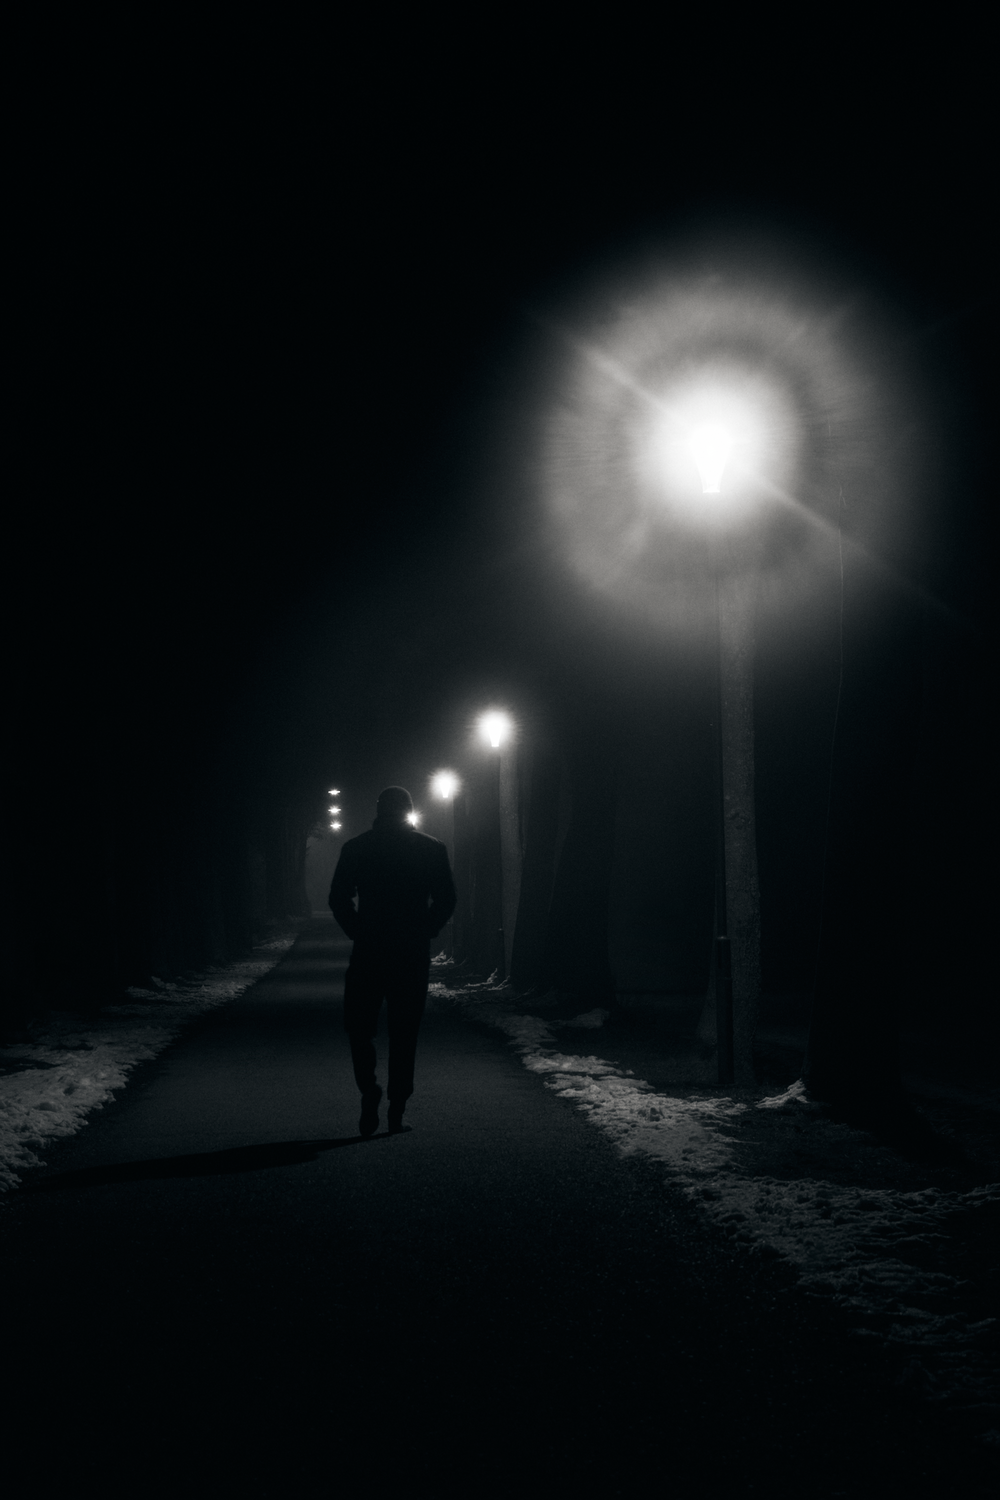 silhouette of man walking on road during night time